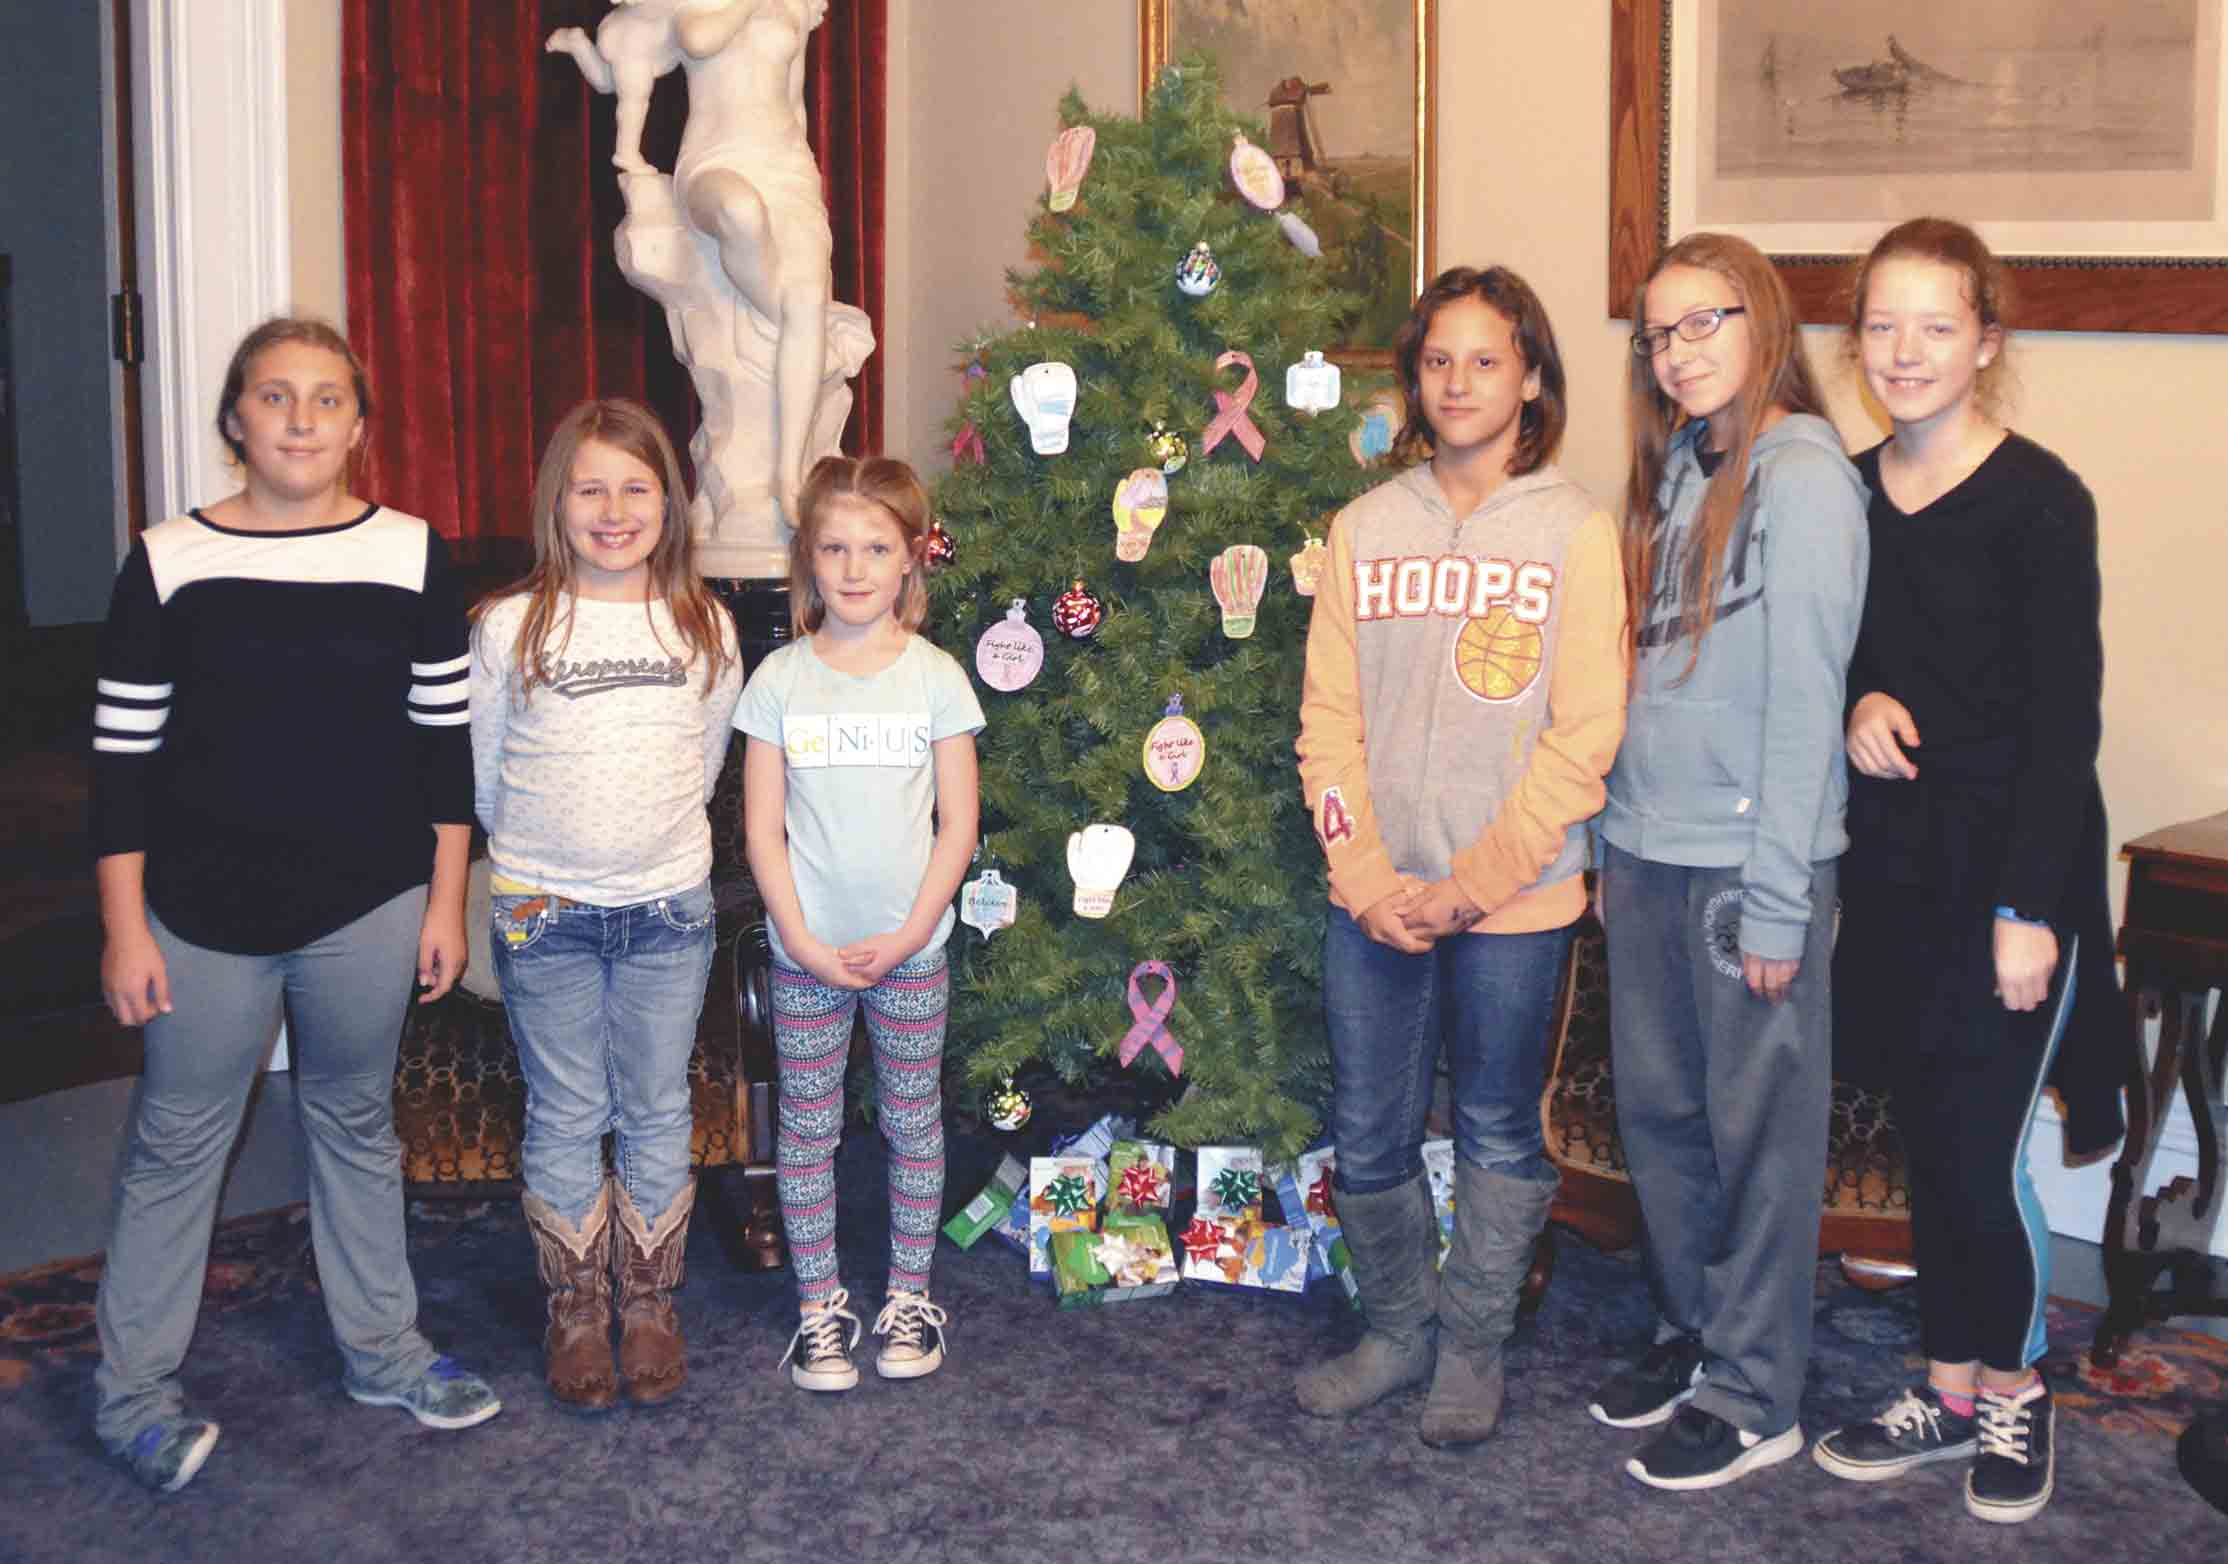 Scouts from Clermont, Elgin, and Wadena Cadet Troop 6044; Clermont, Elgin, and Wadena Daisy, Brownie, and Junior Troop 6038; and West Union Daisy and Brownie Troop 1873, including (l-r) Shae Moncada, Adeda Usher, Layla Schott, Juliana Muxin, Rachel Everman, and Allison Garlow, help decorate...